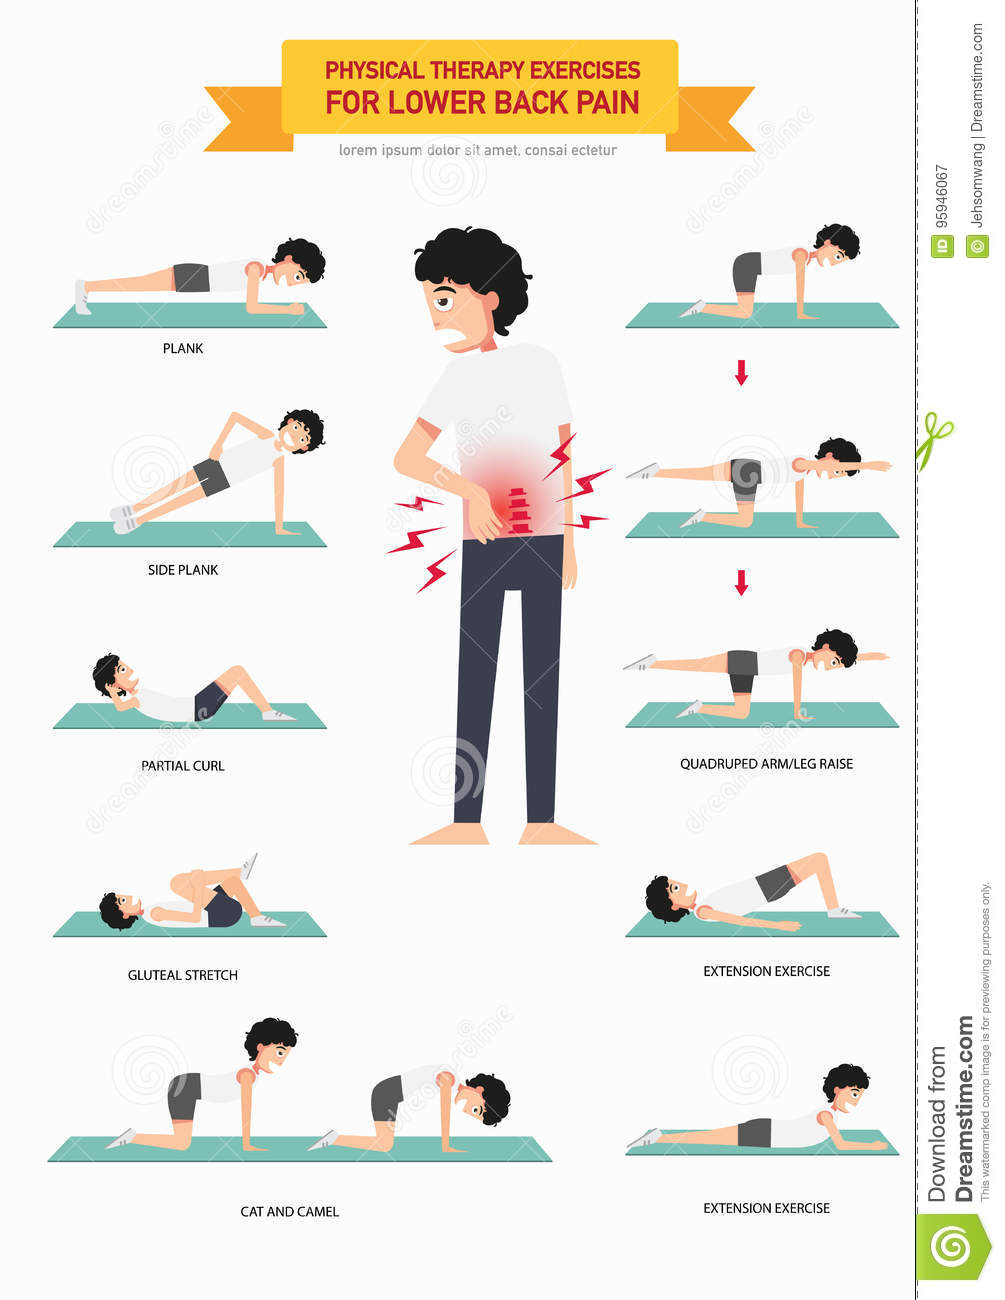 Exercise for physical therapy - Back Exercises Illustration Infographic Lower Pain Physical Therapy